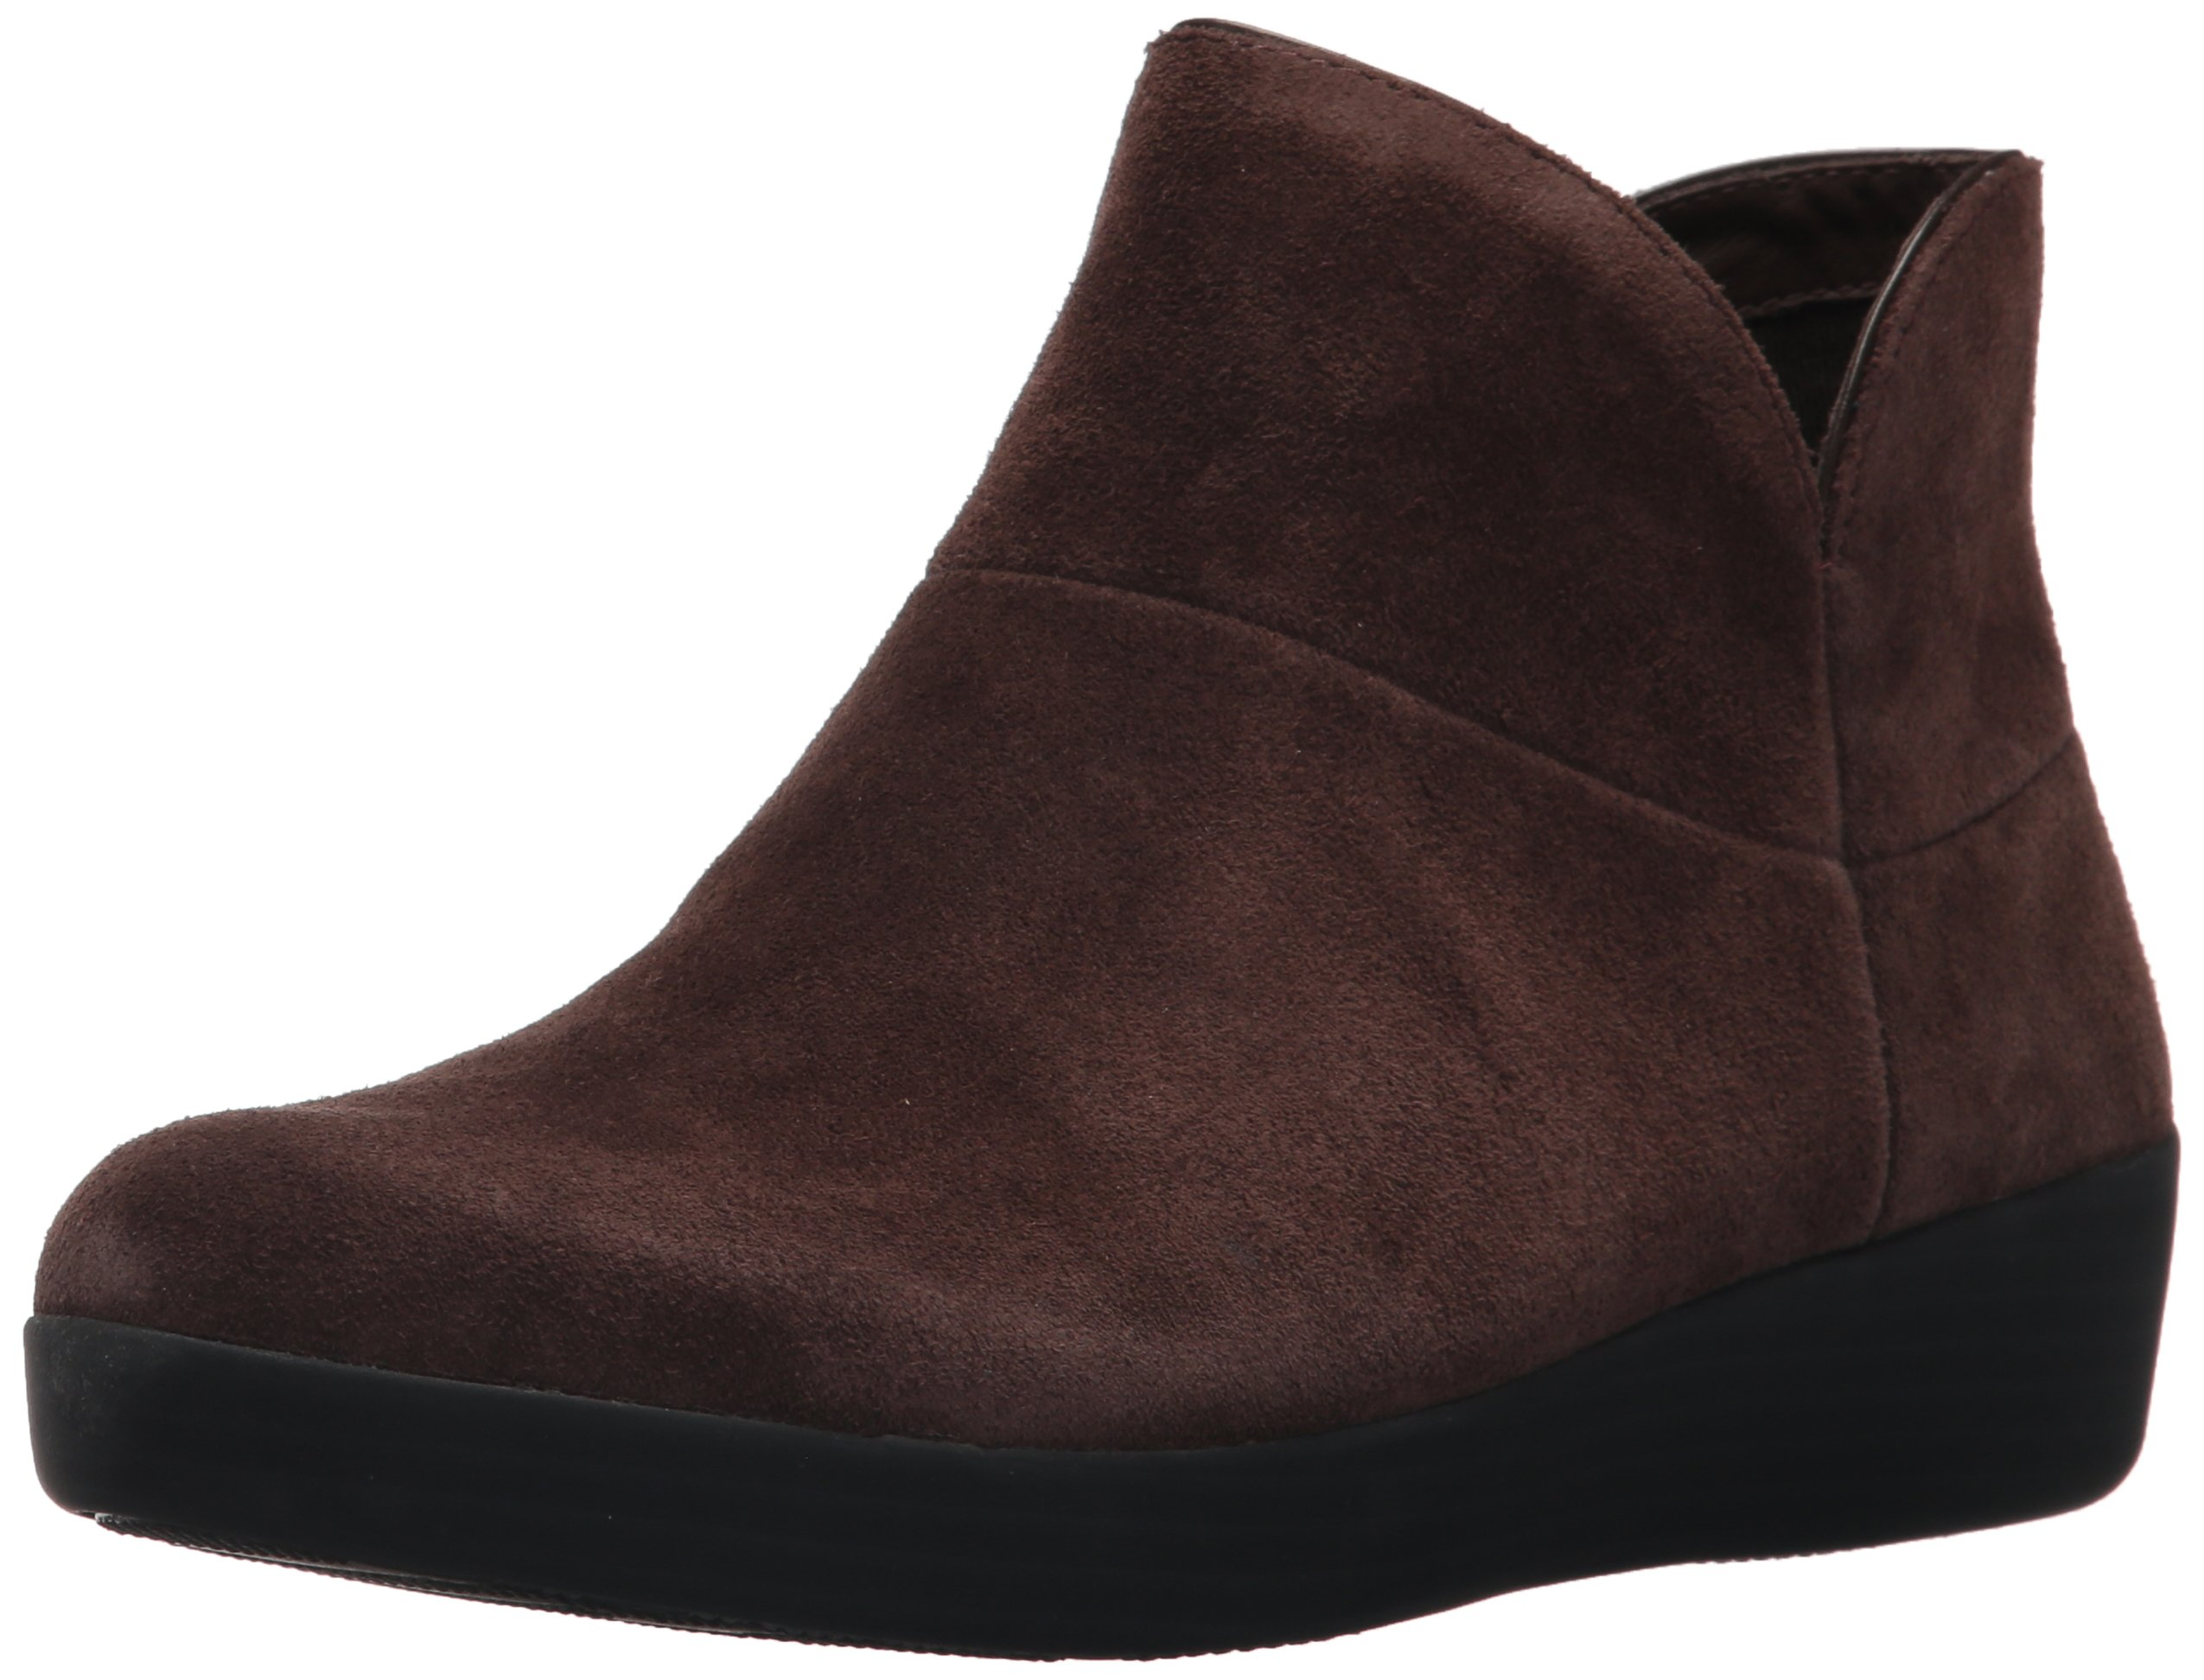 FitFlop Women's Supermod II Suede Ankle Boot, Chocolate, 9 M US